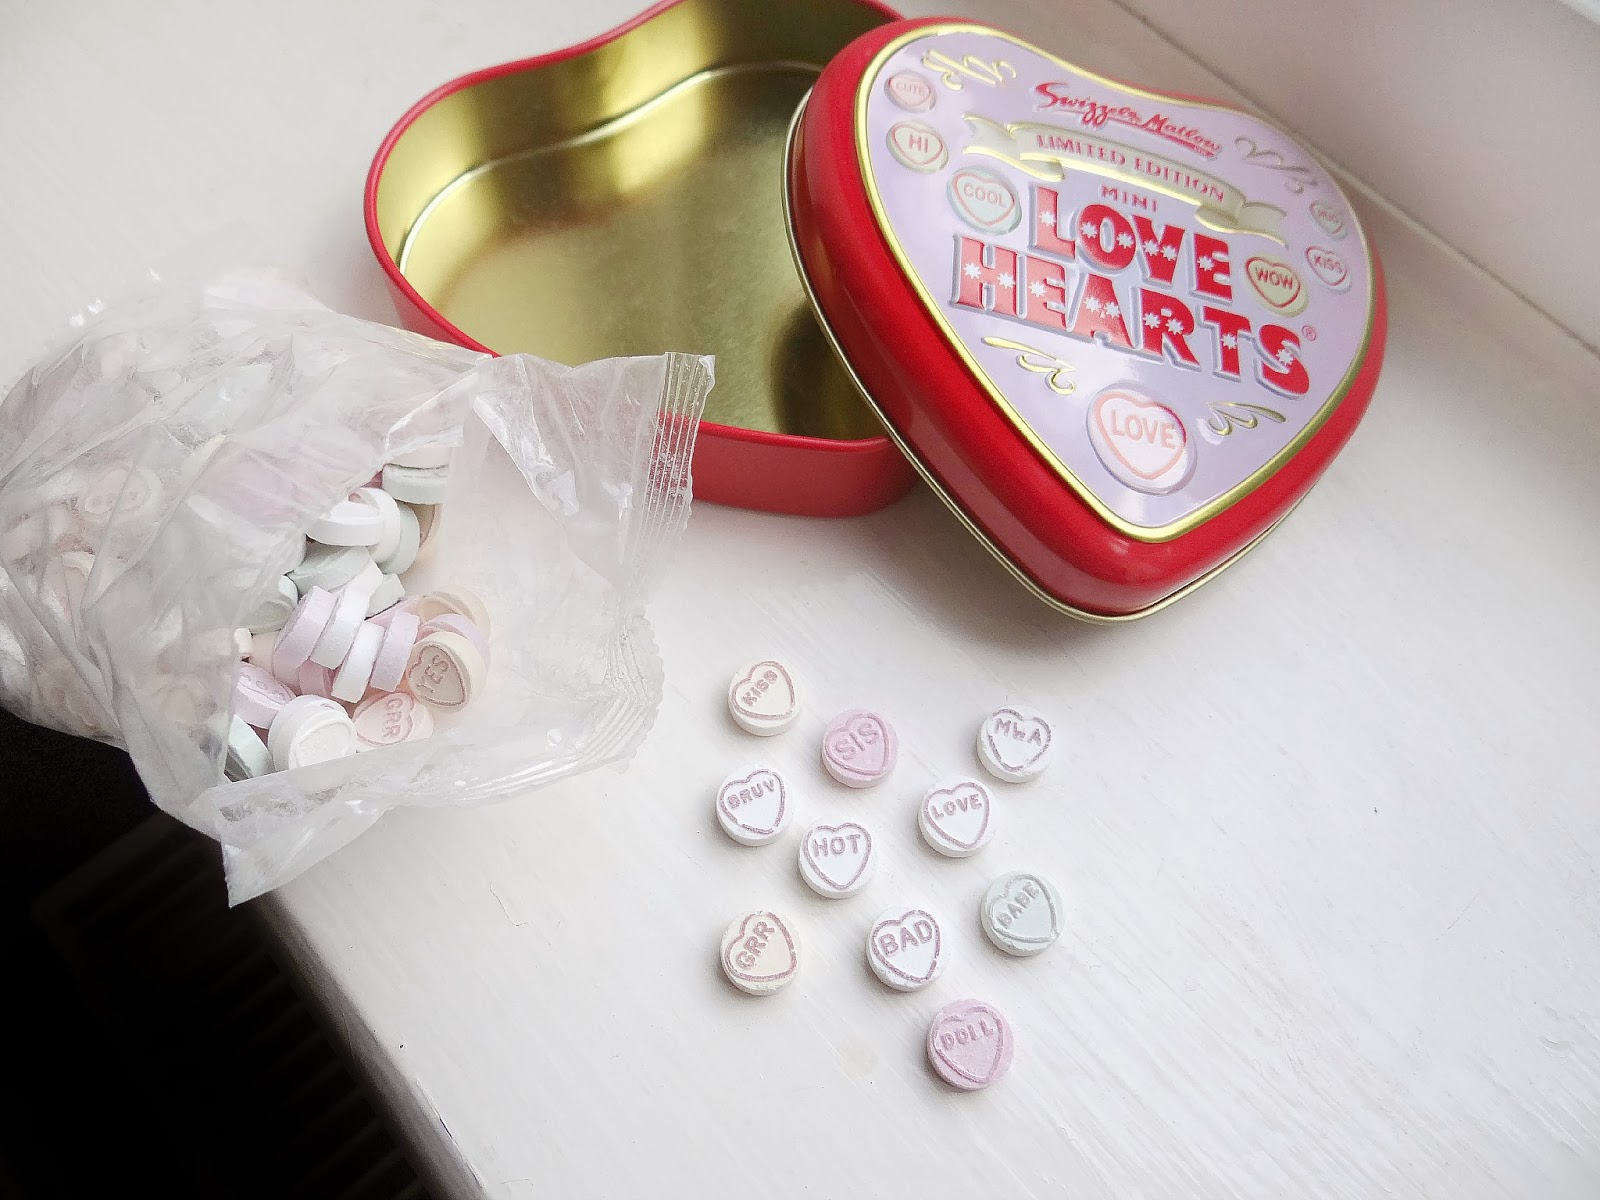 Love Hearts, Limited Edition Love Hearts Tin, Love Hearts 60th Anniversary Competition